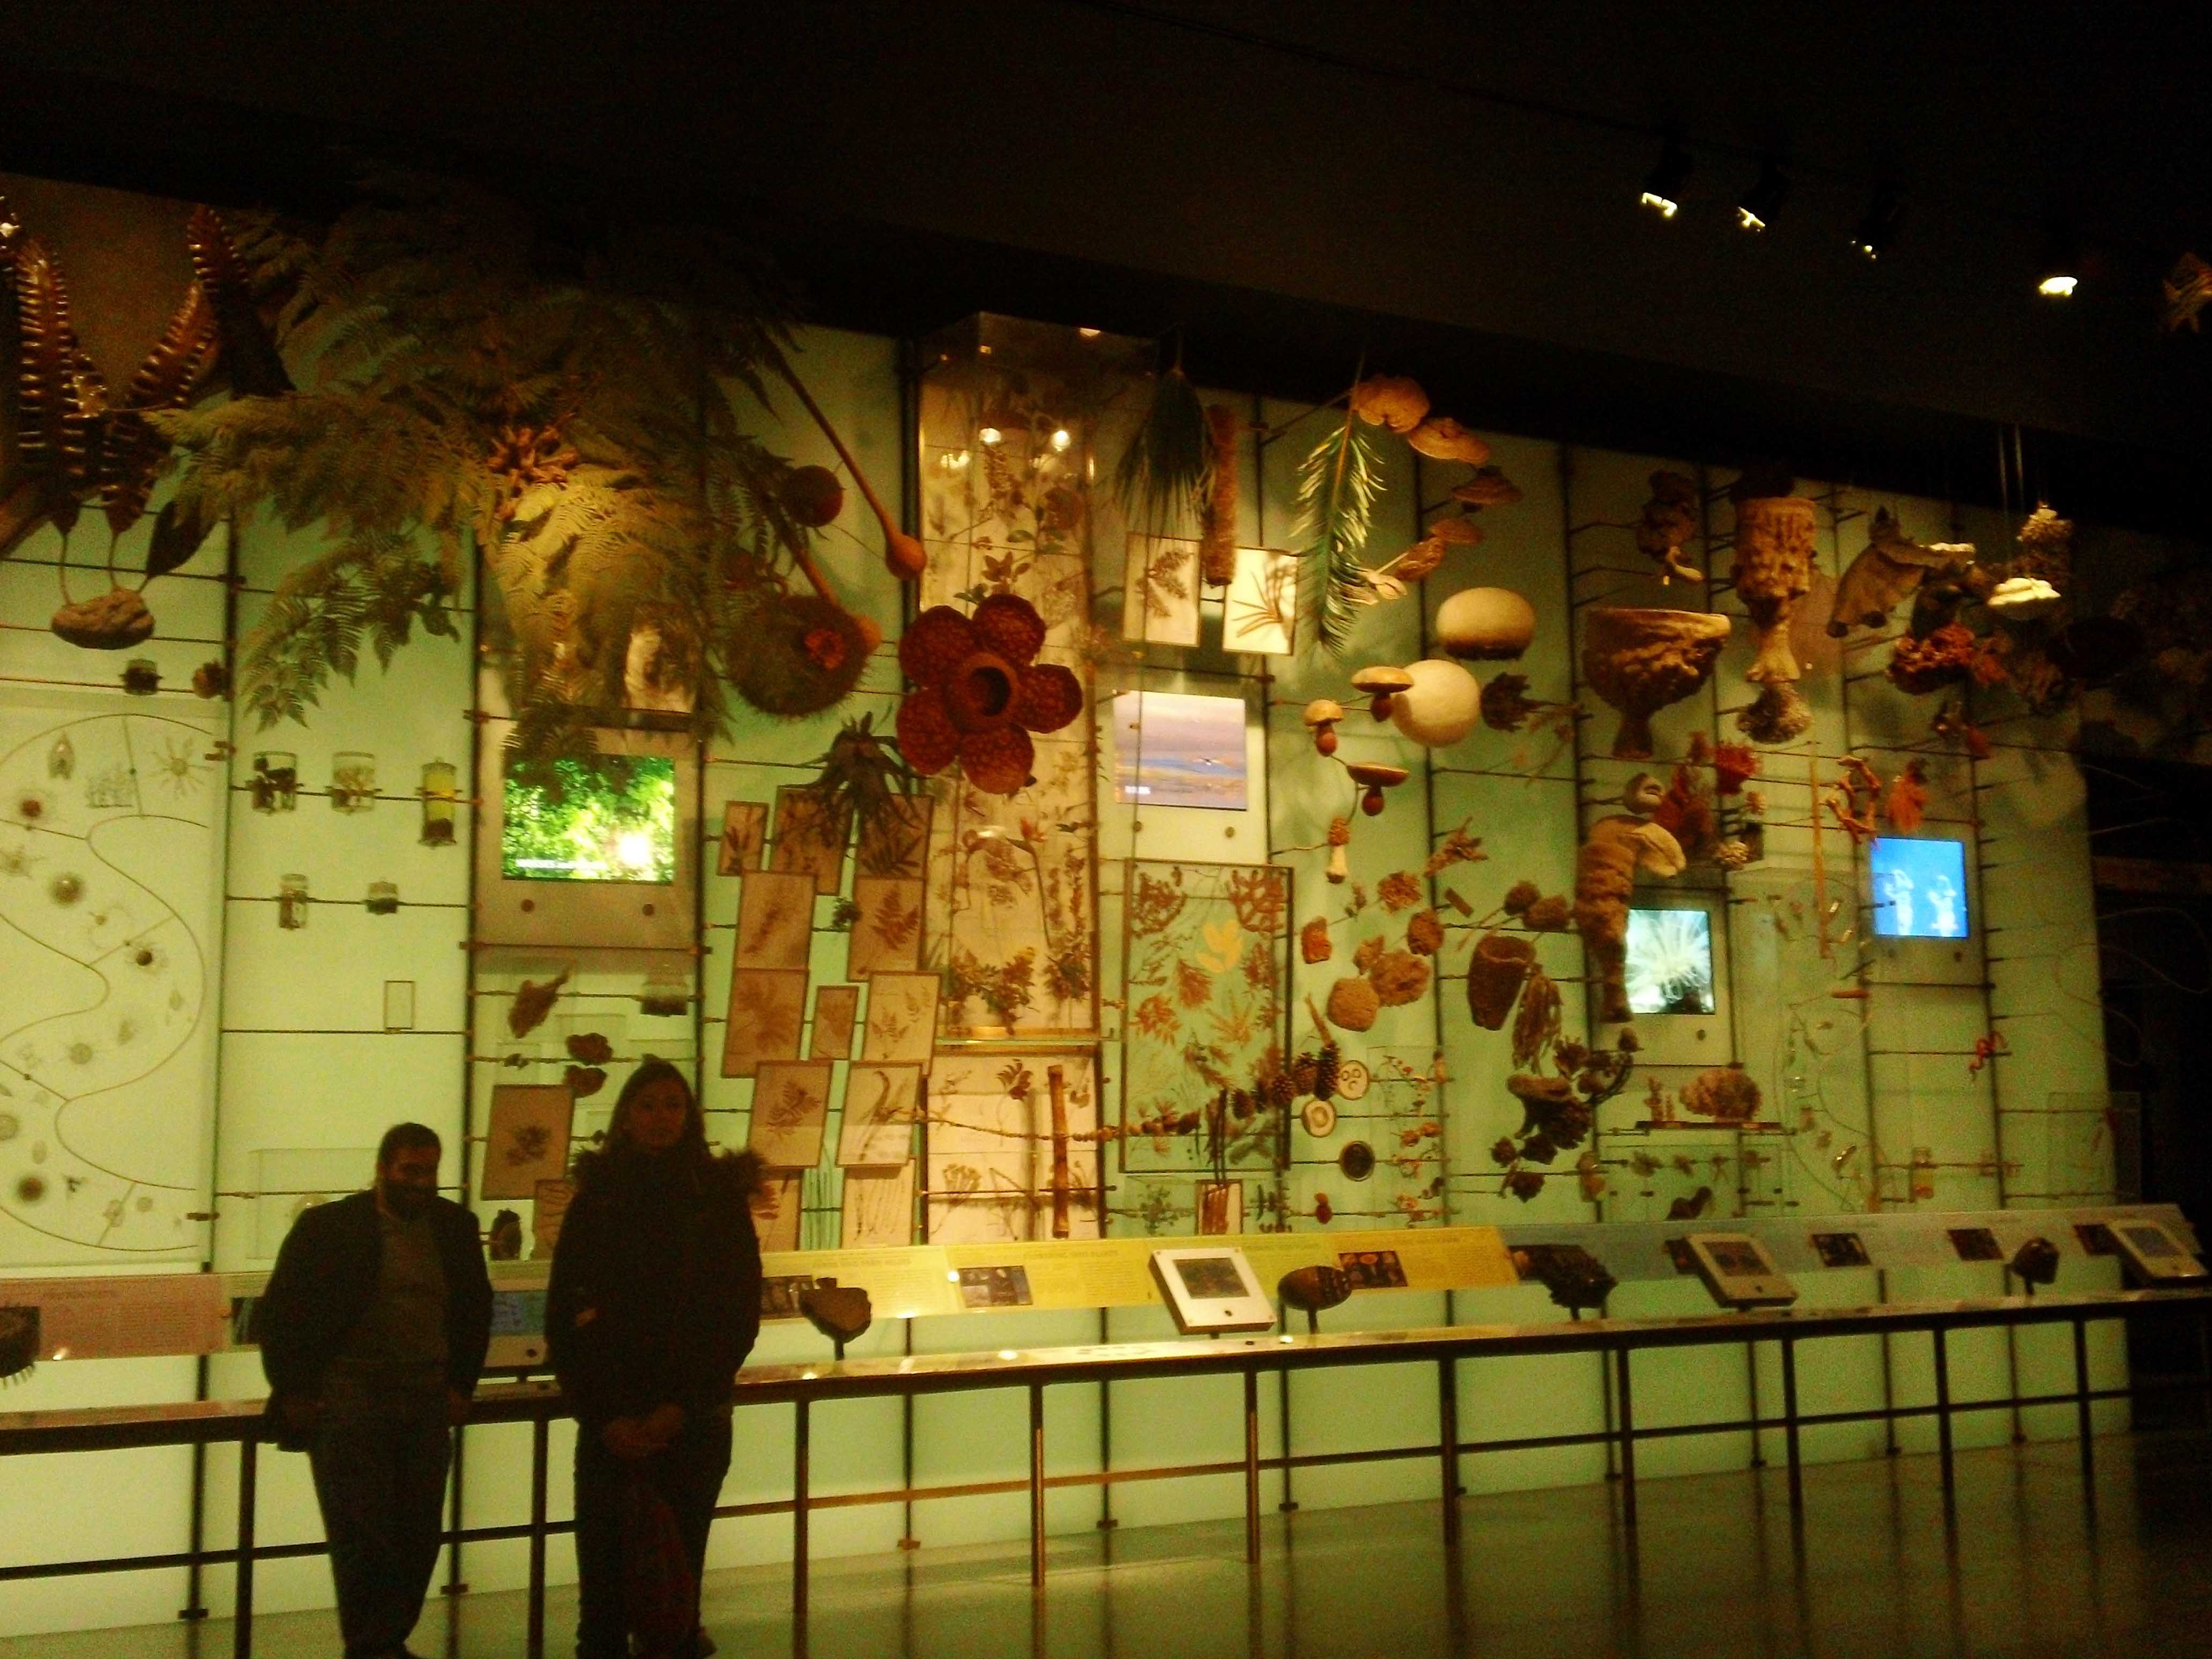 American Museum of Natural History - Atlas Obscura Visits - Annetta & Sarah